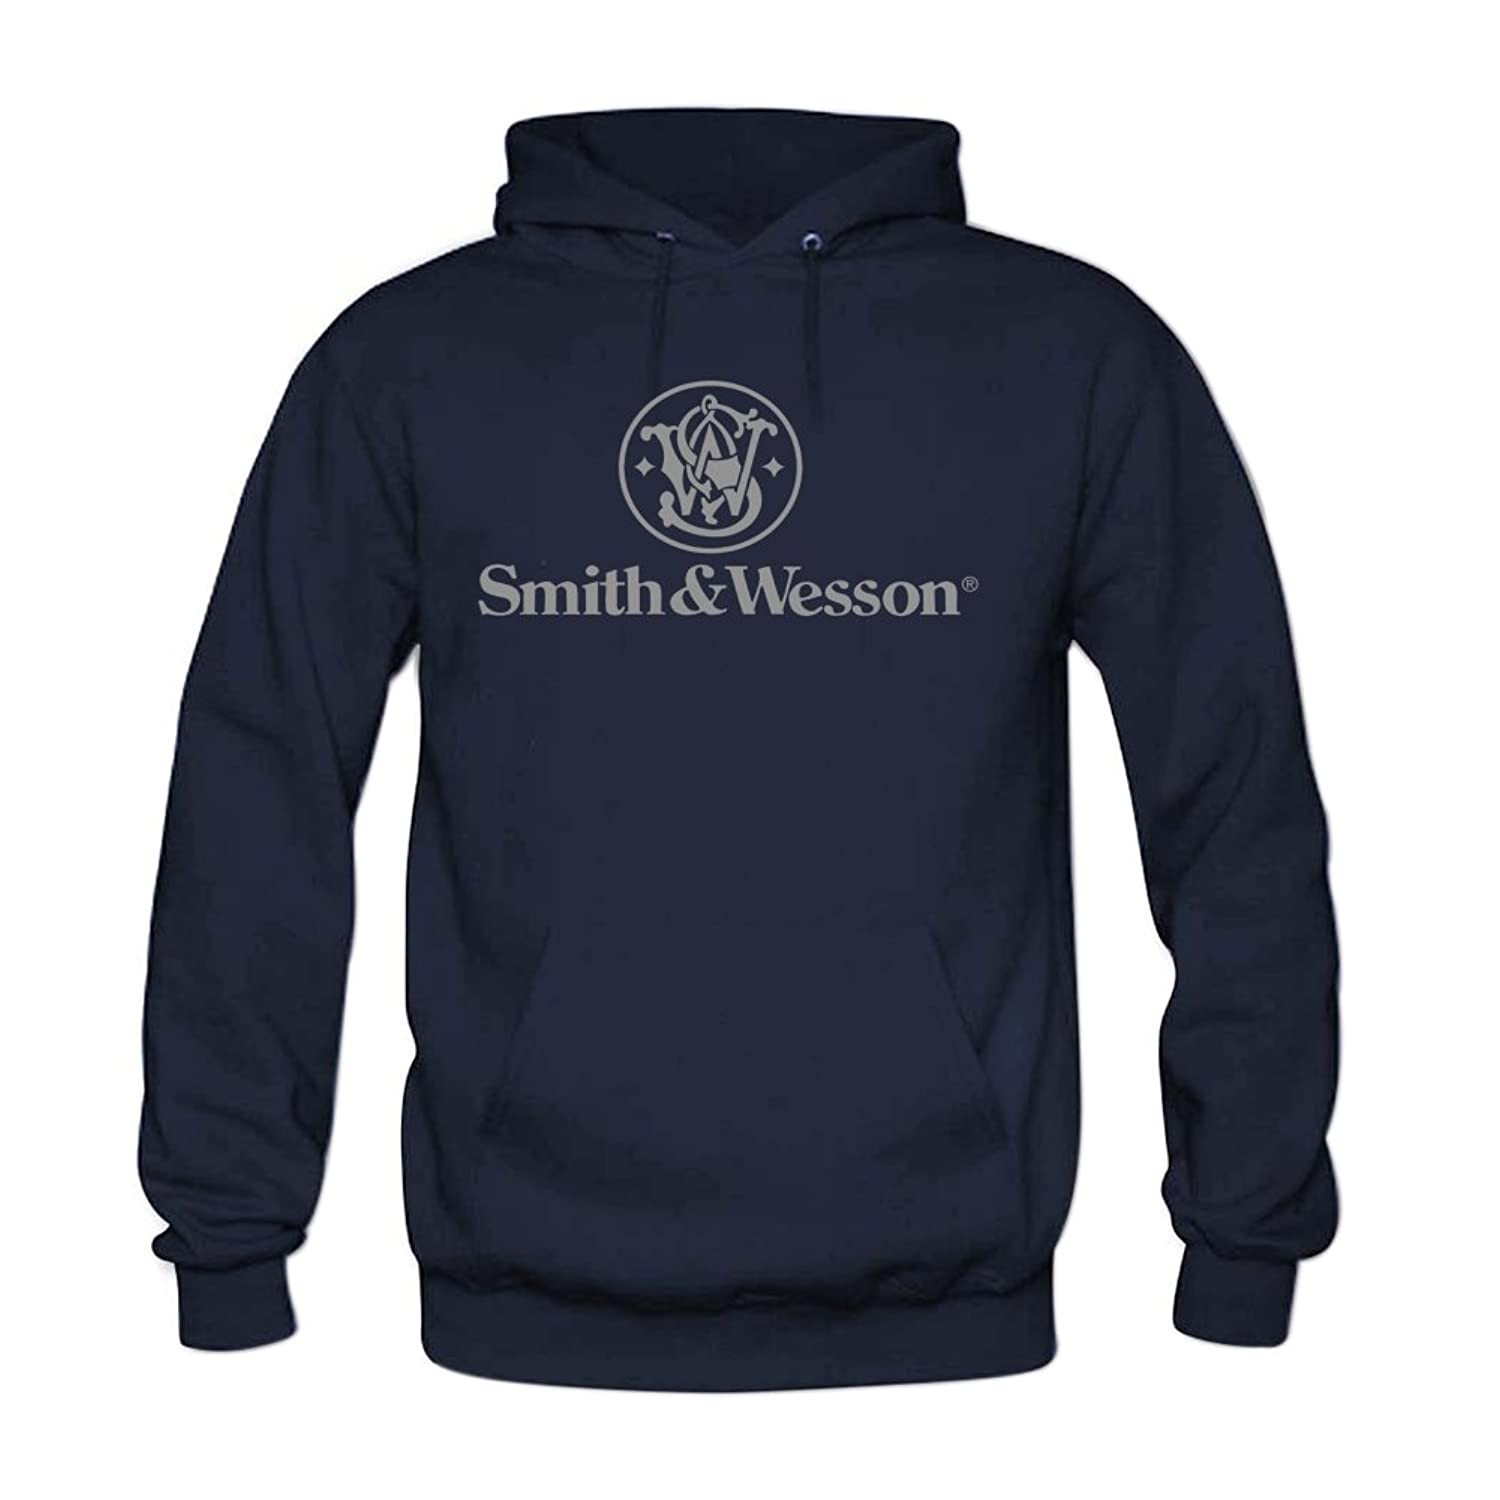 wesson men Find smith & wesson watches at low prices shop online for men's, women's, and kids' watches and accessories at amazonca.